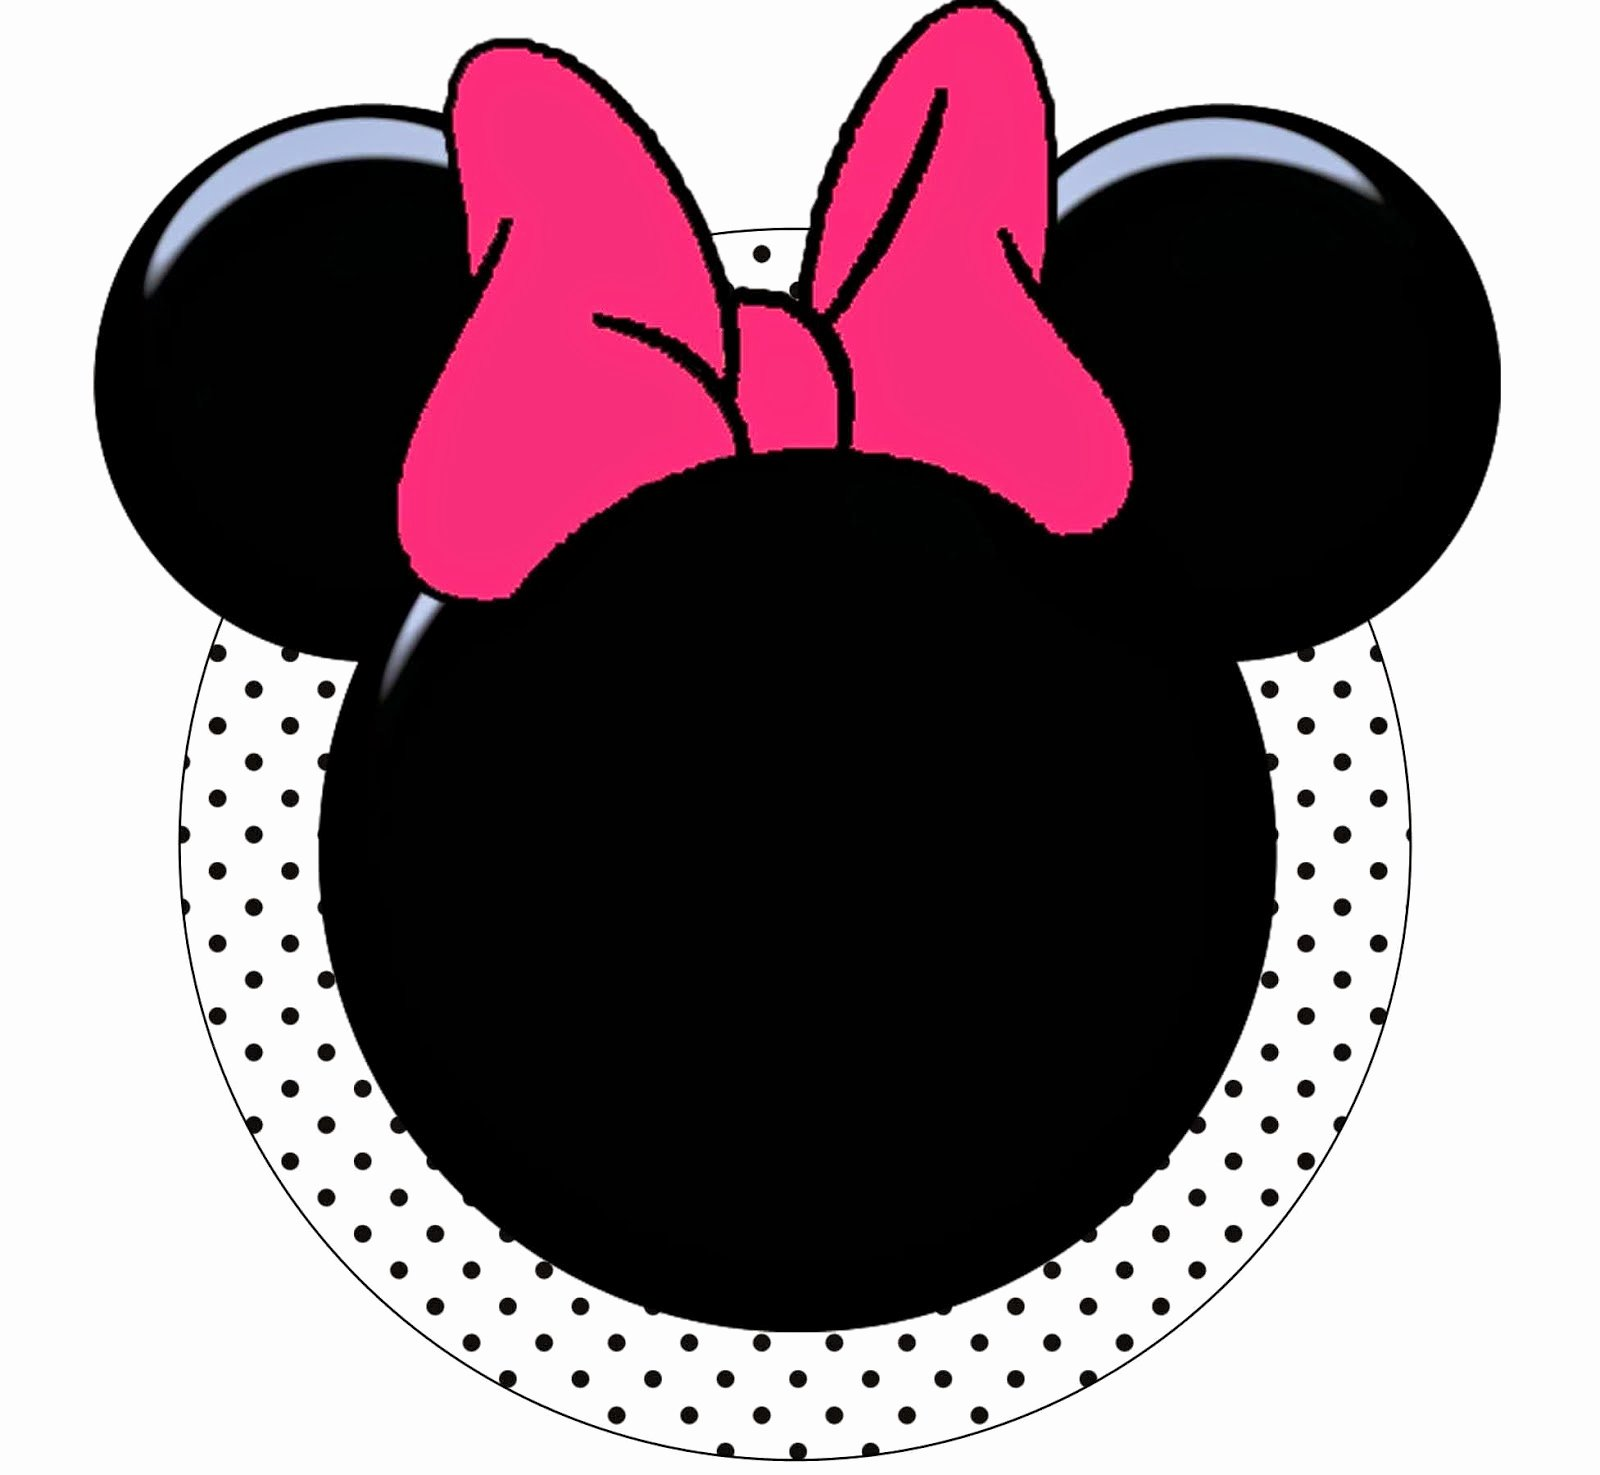 Printable Minnie Mouse Head Lovely Minnie Mouse Ears and Bow Template Free